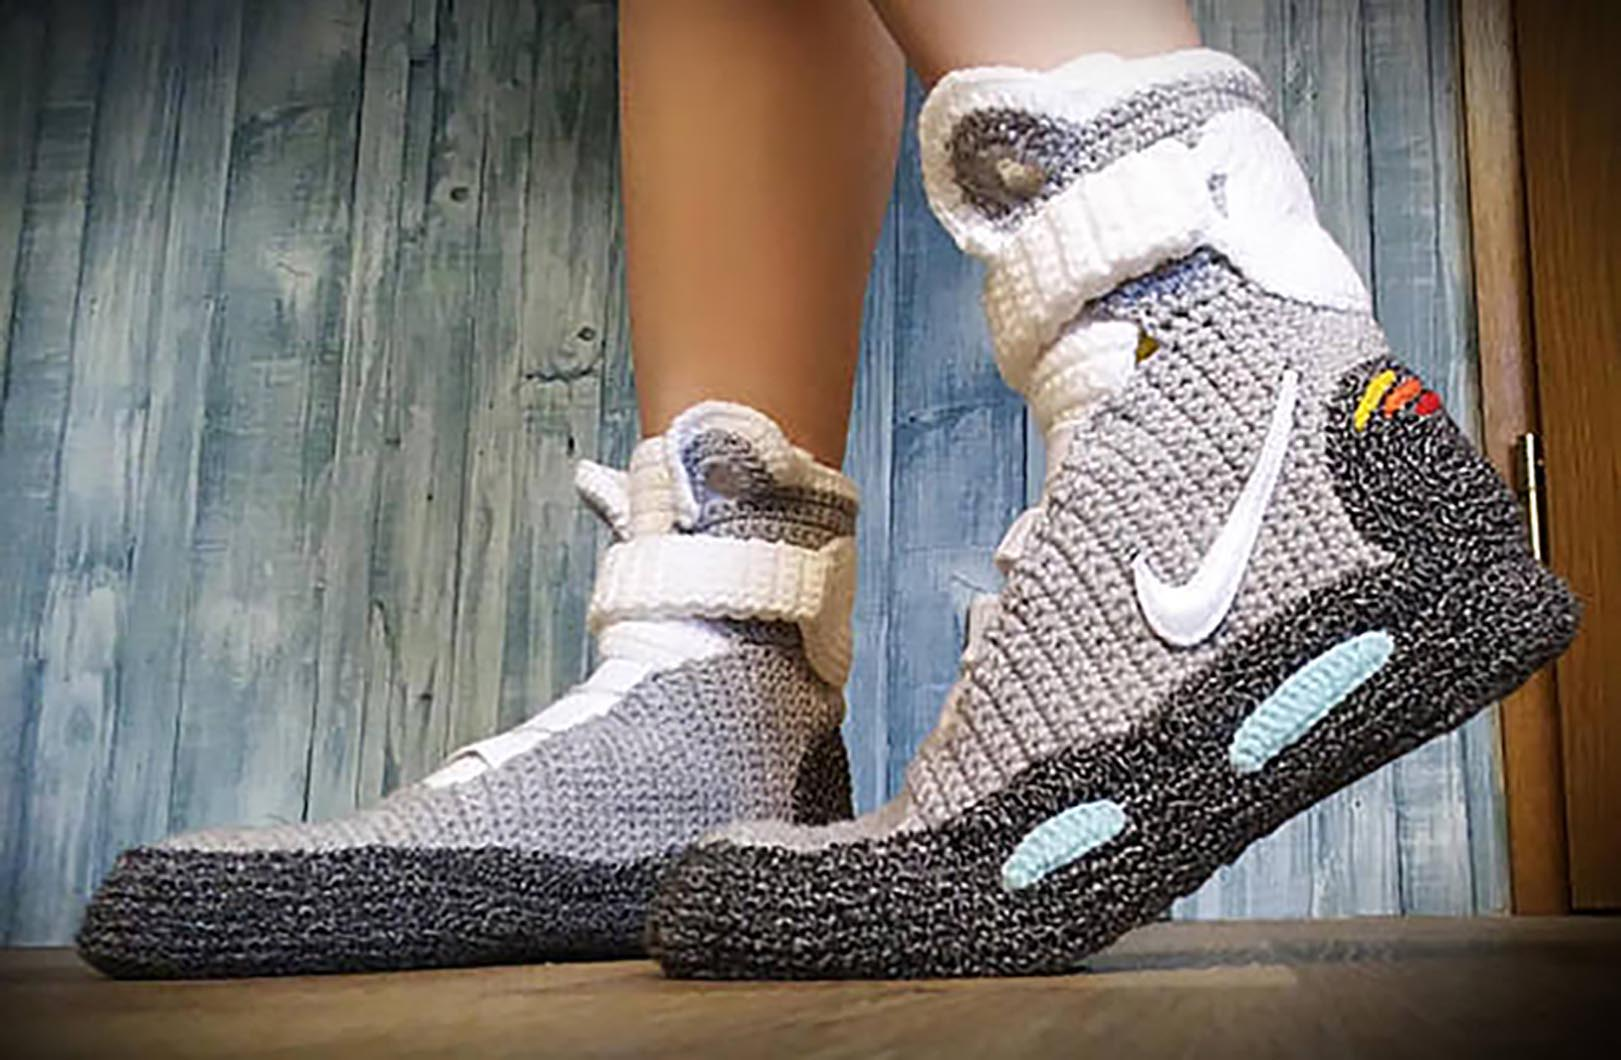 reputable site 661d7 3f154 nike-marty-mcfly-living-corriere-3.jpg